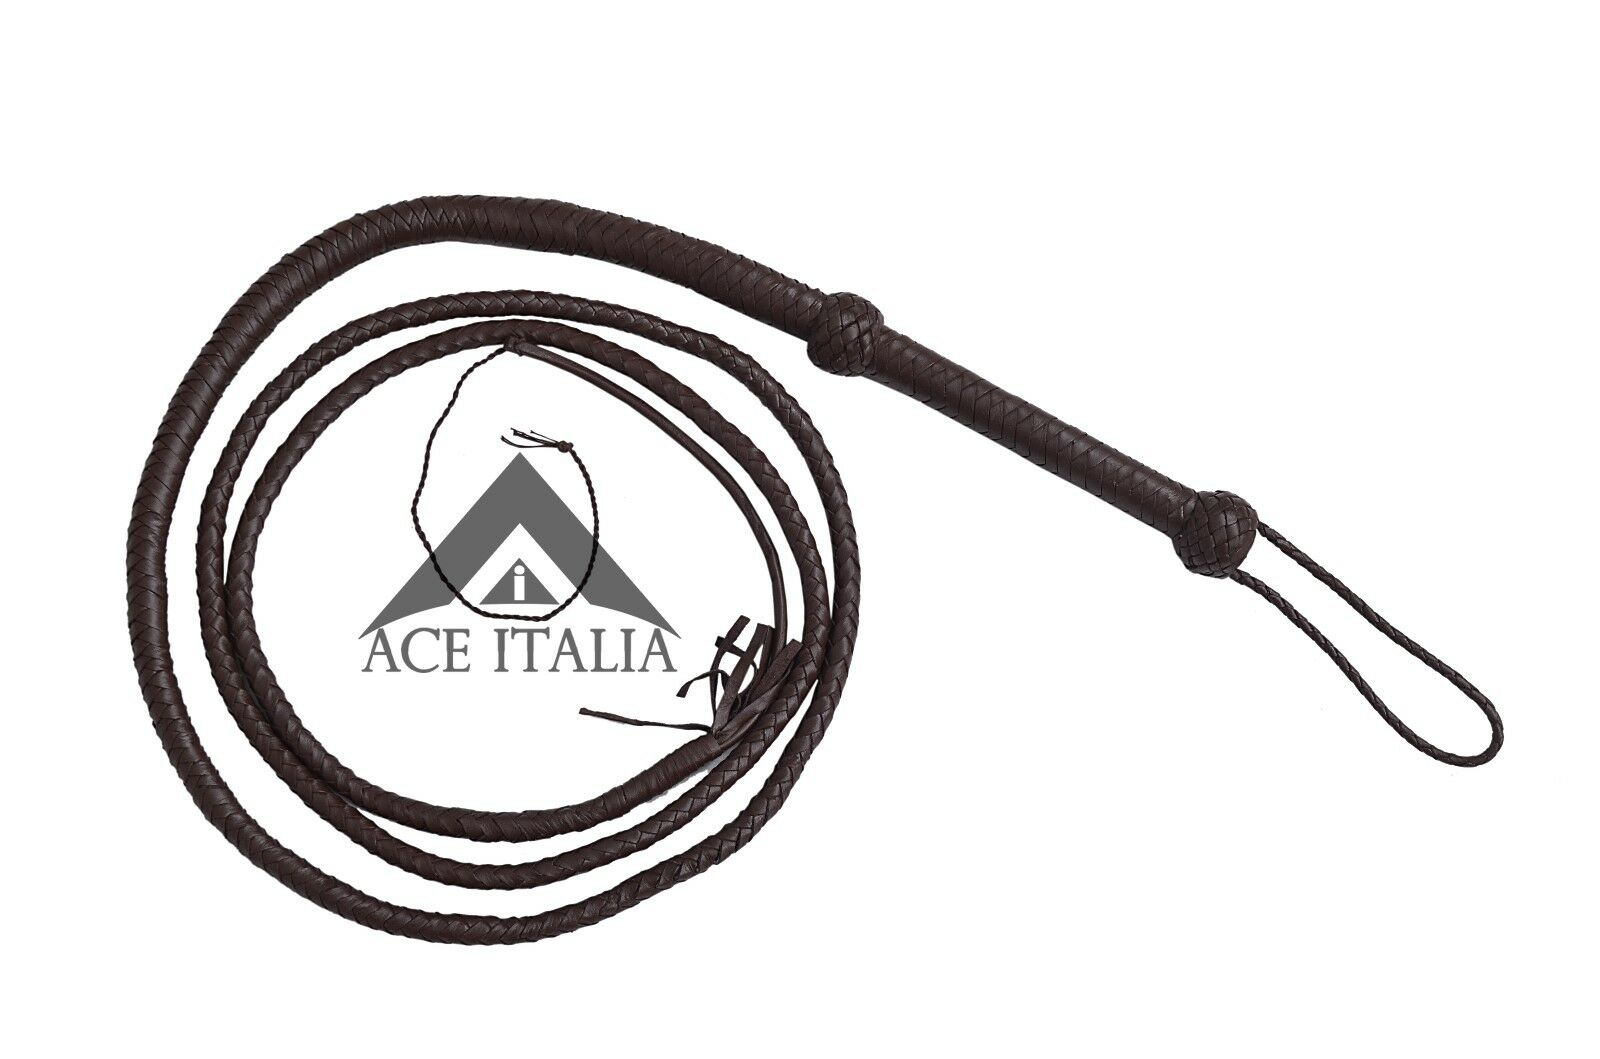 Bull Whip Hunter Dark Brown Indiana Jones Movie Inspired 100% Real Leather